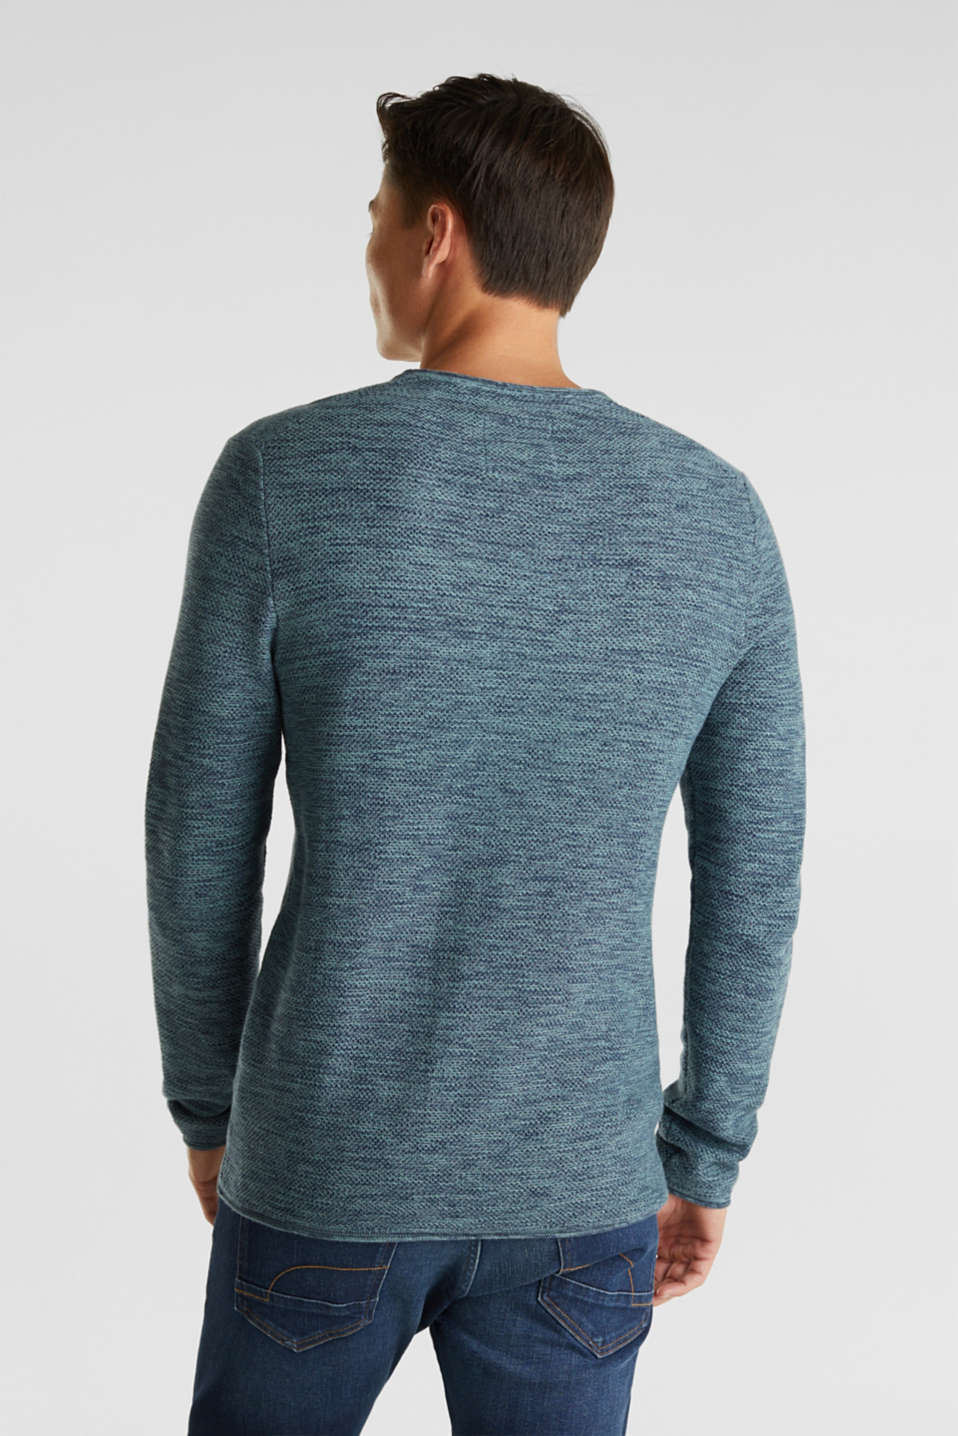 Textured jumper made of 100% cotton, TURQUOISE, detail image number 3